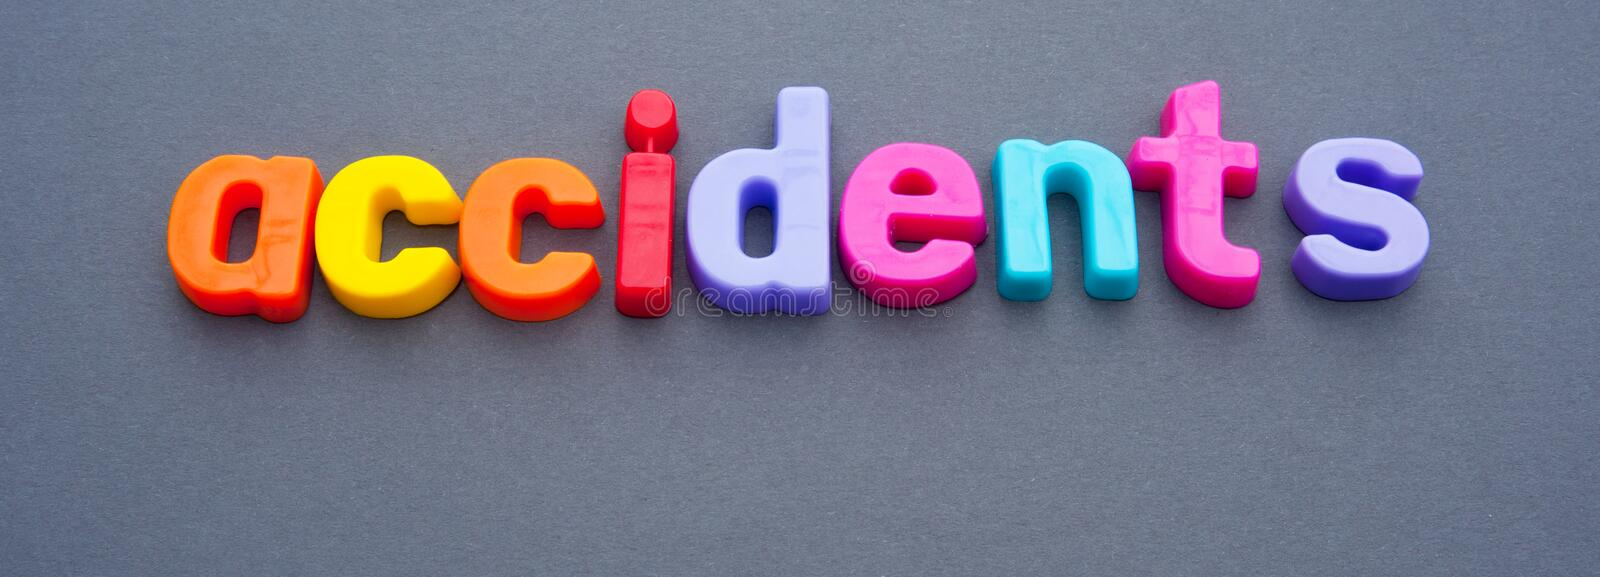 Banner: accidents. Text ' accidents ' in colorful lowercase letters, dark background royalty free stock photo